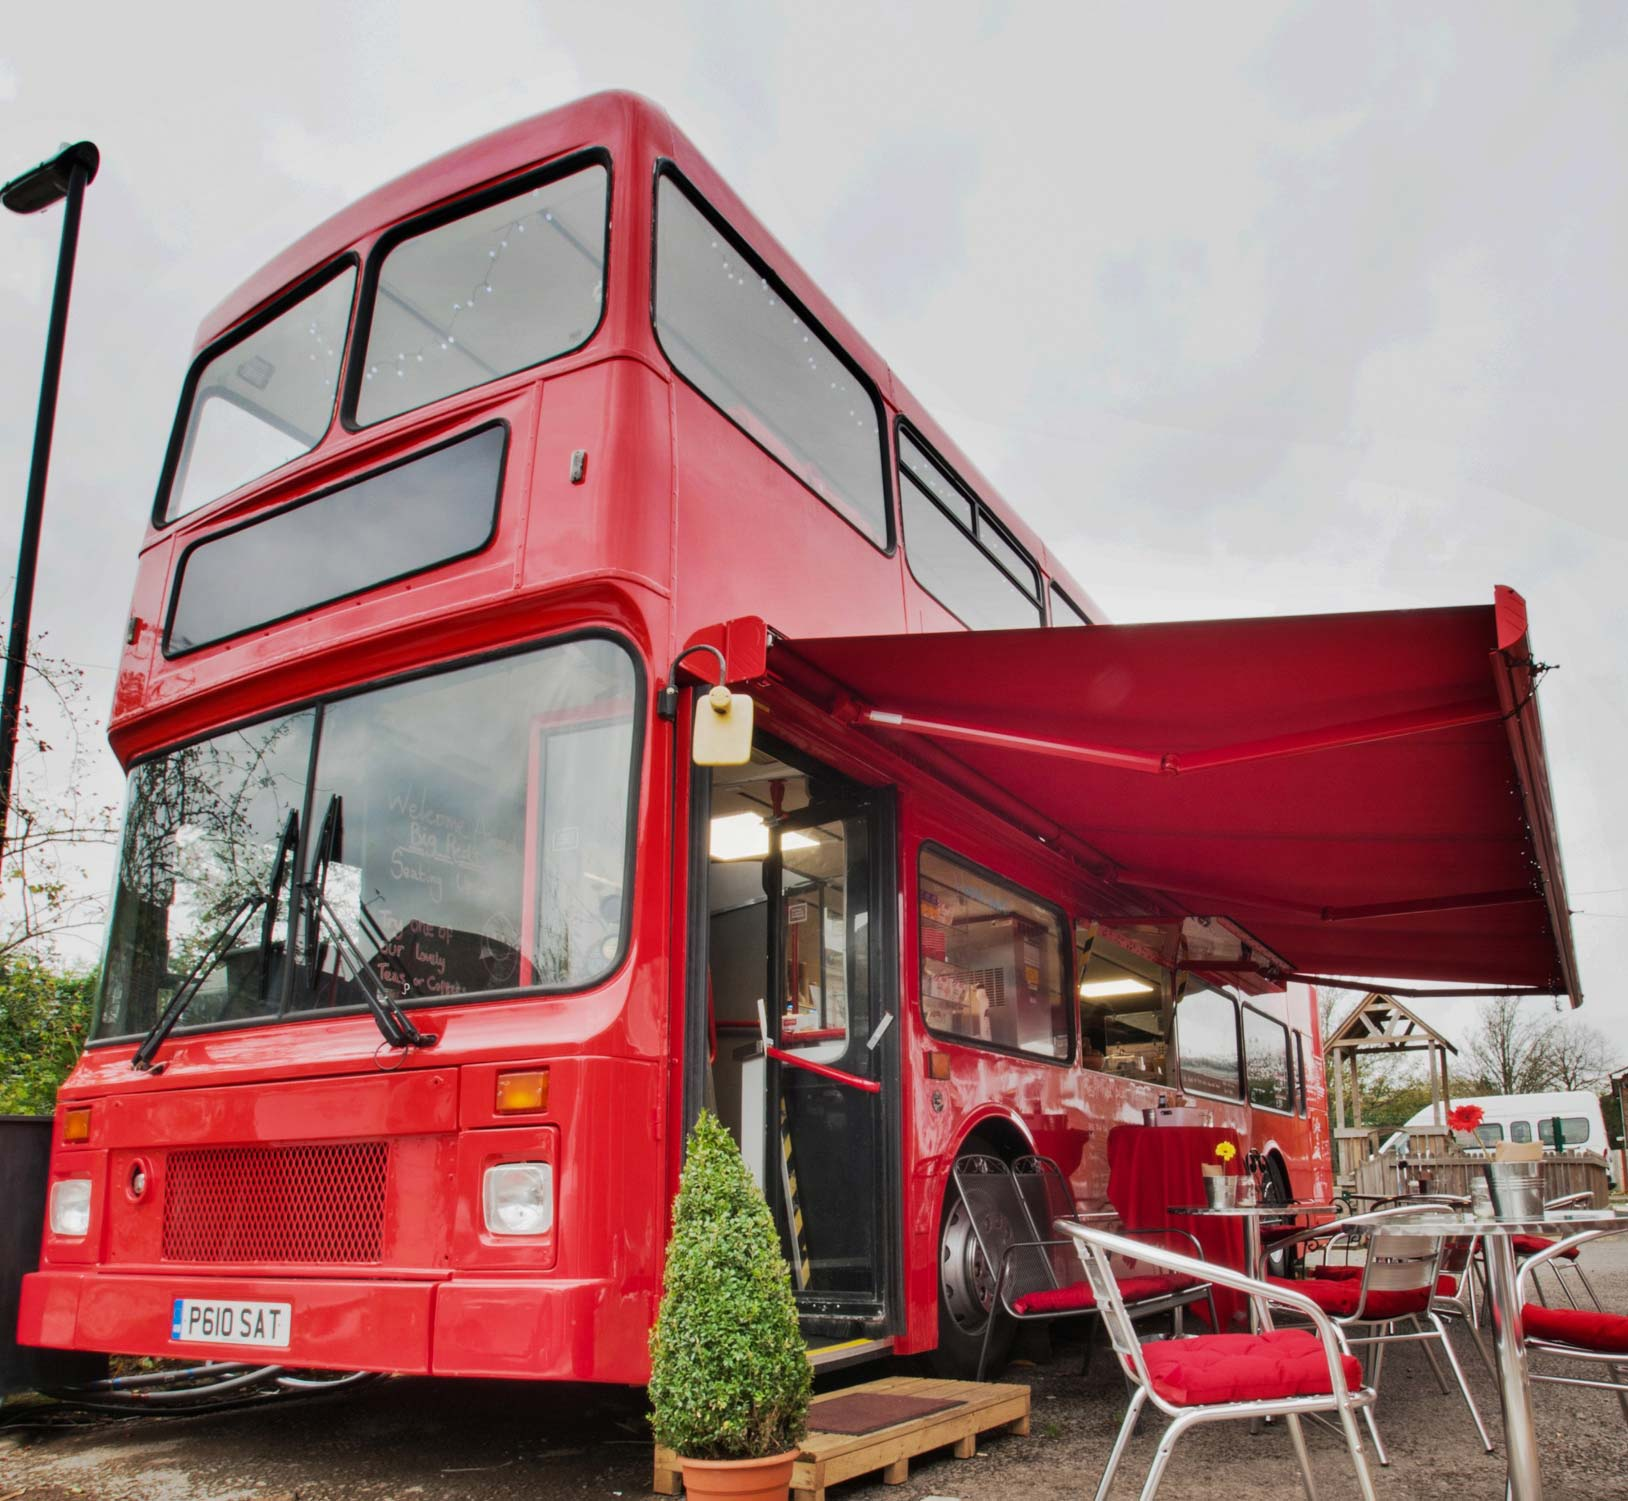 Welcome to the Big Red Bus Cafe - Big Red Bus Cafe